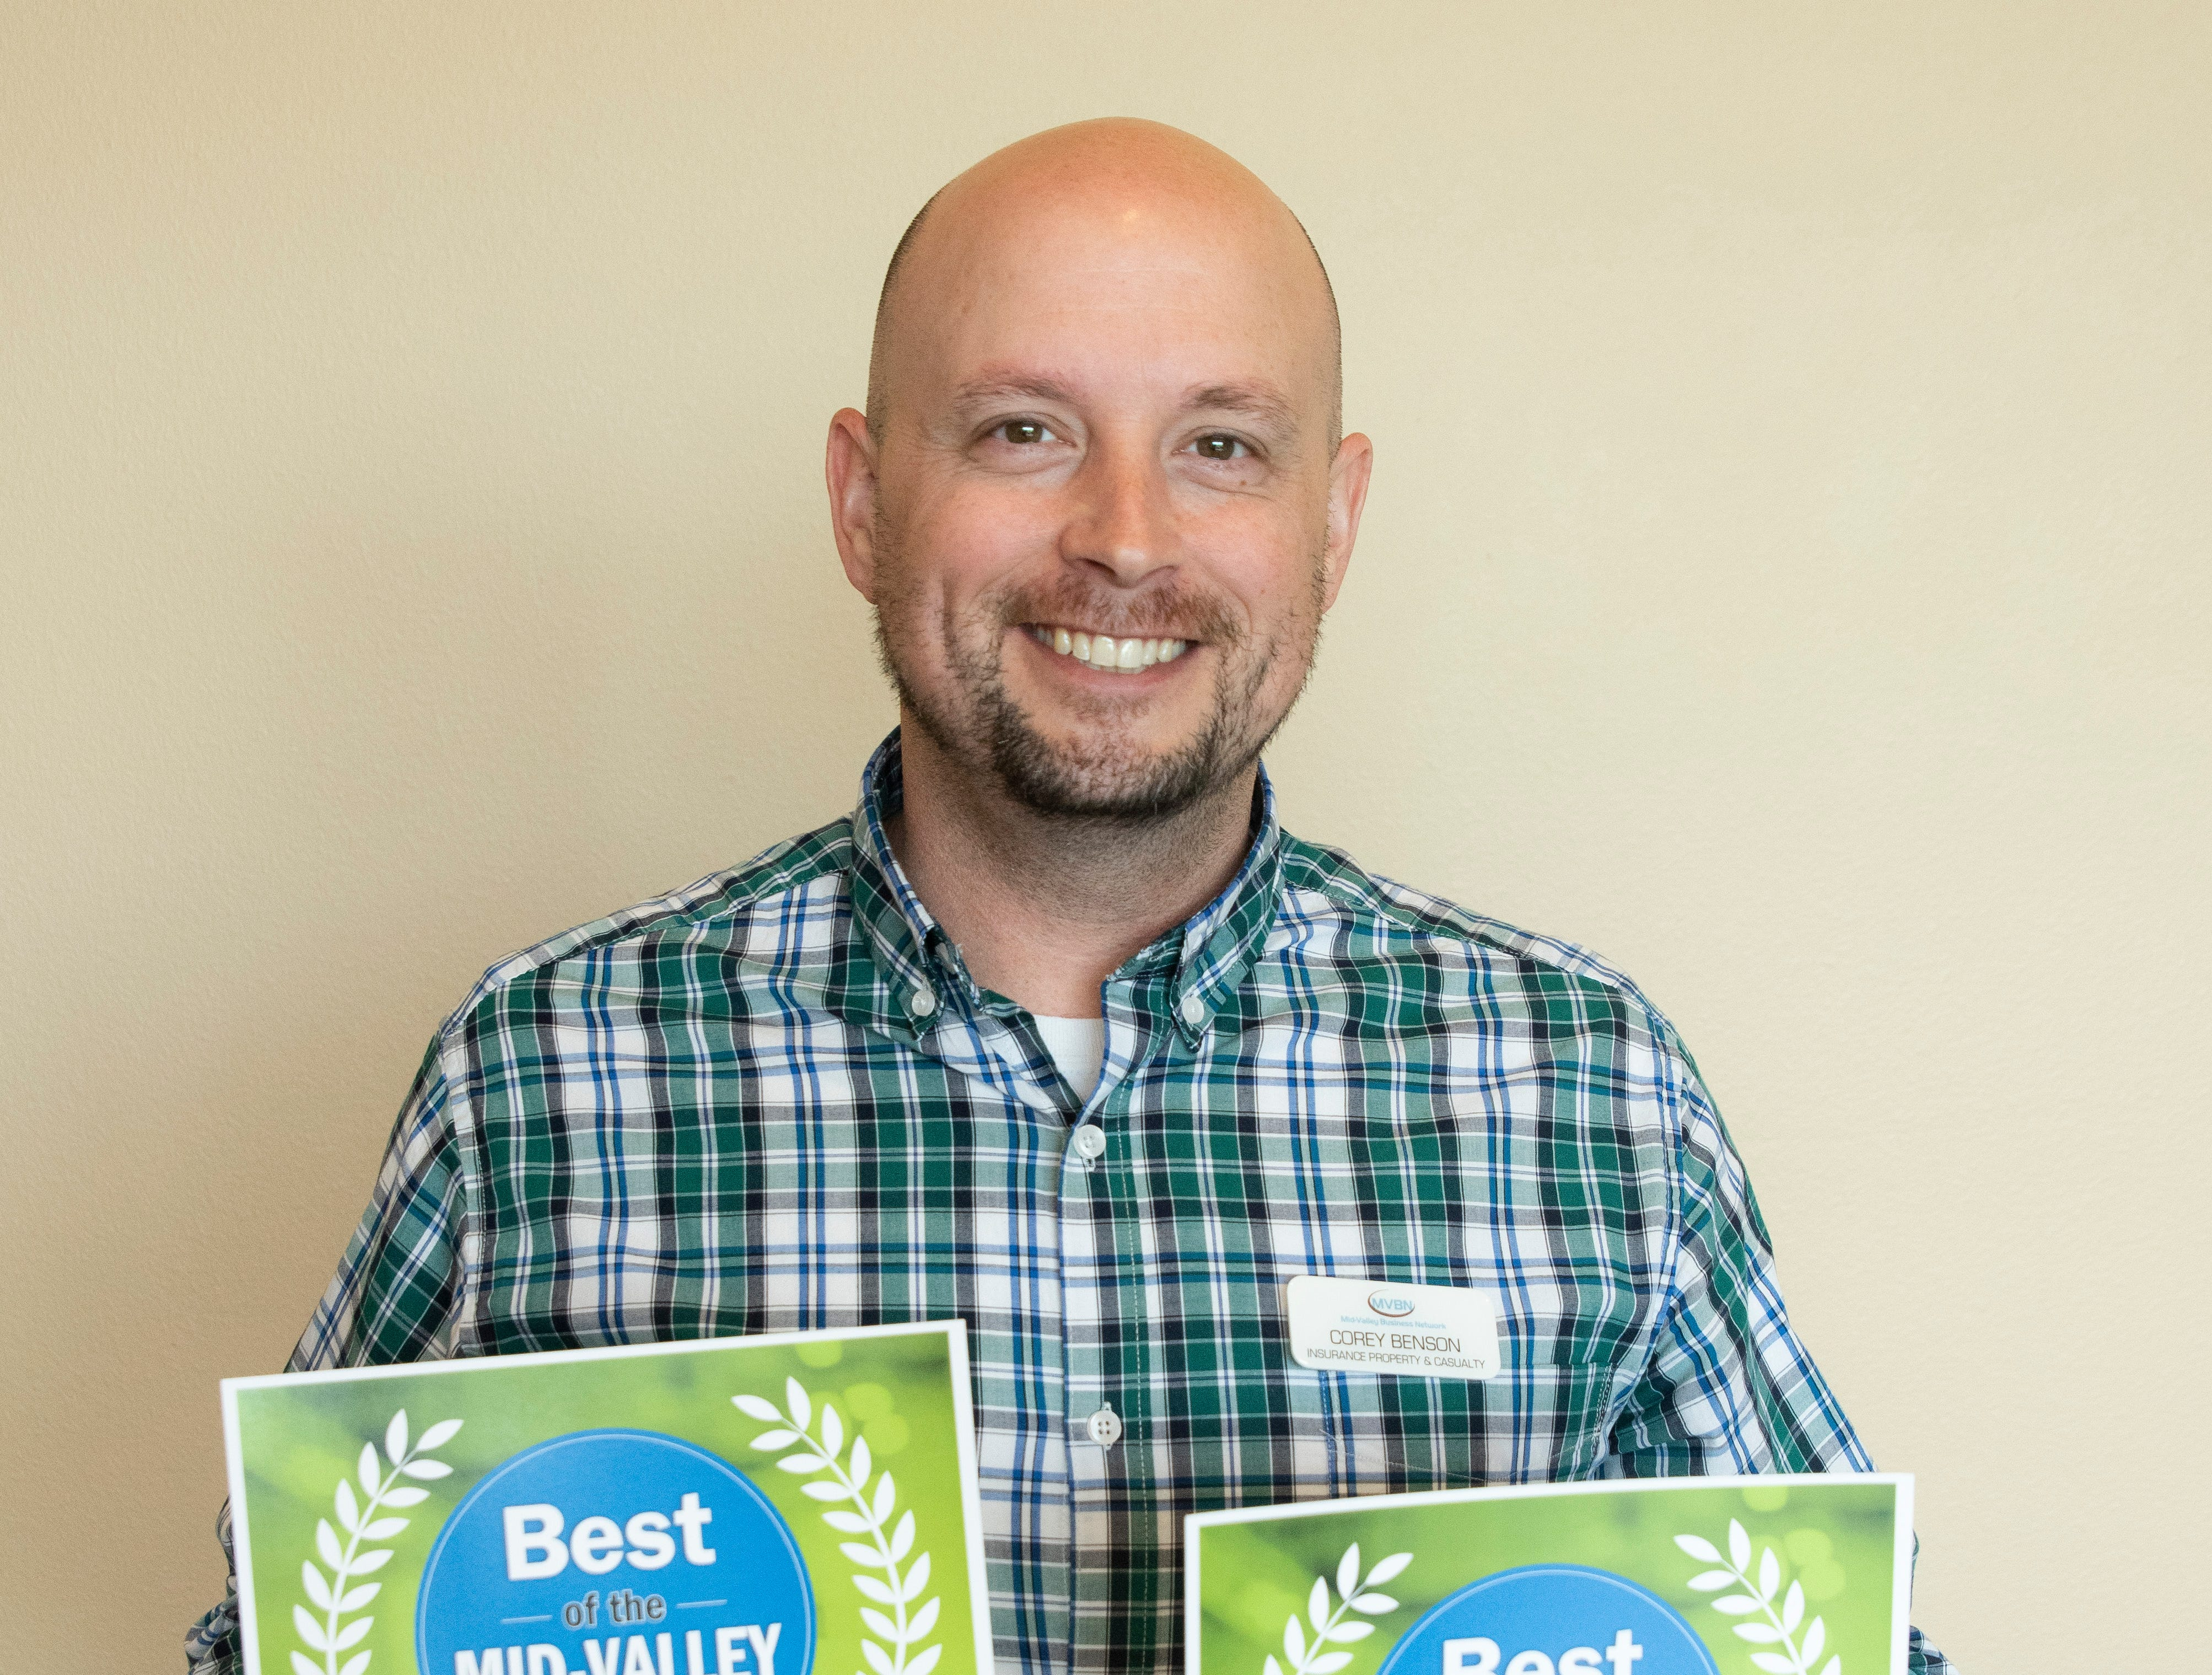 Corey Benson won silver for Best Insurance Agent and Farmers won bronze for Best Insurance Company in the 2019 Best of the Mid-Valley.